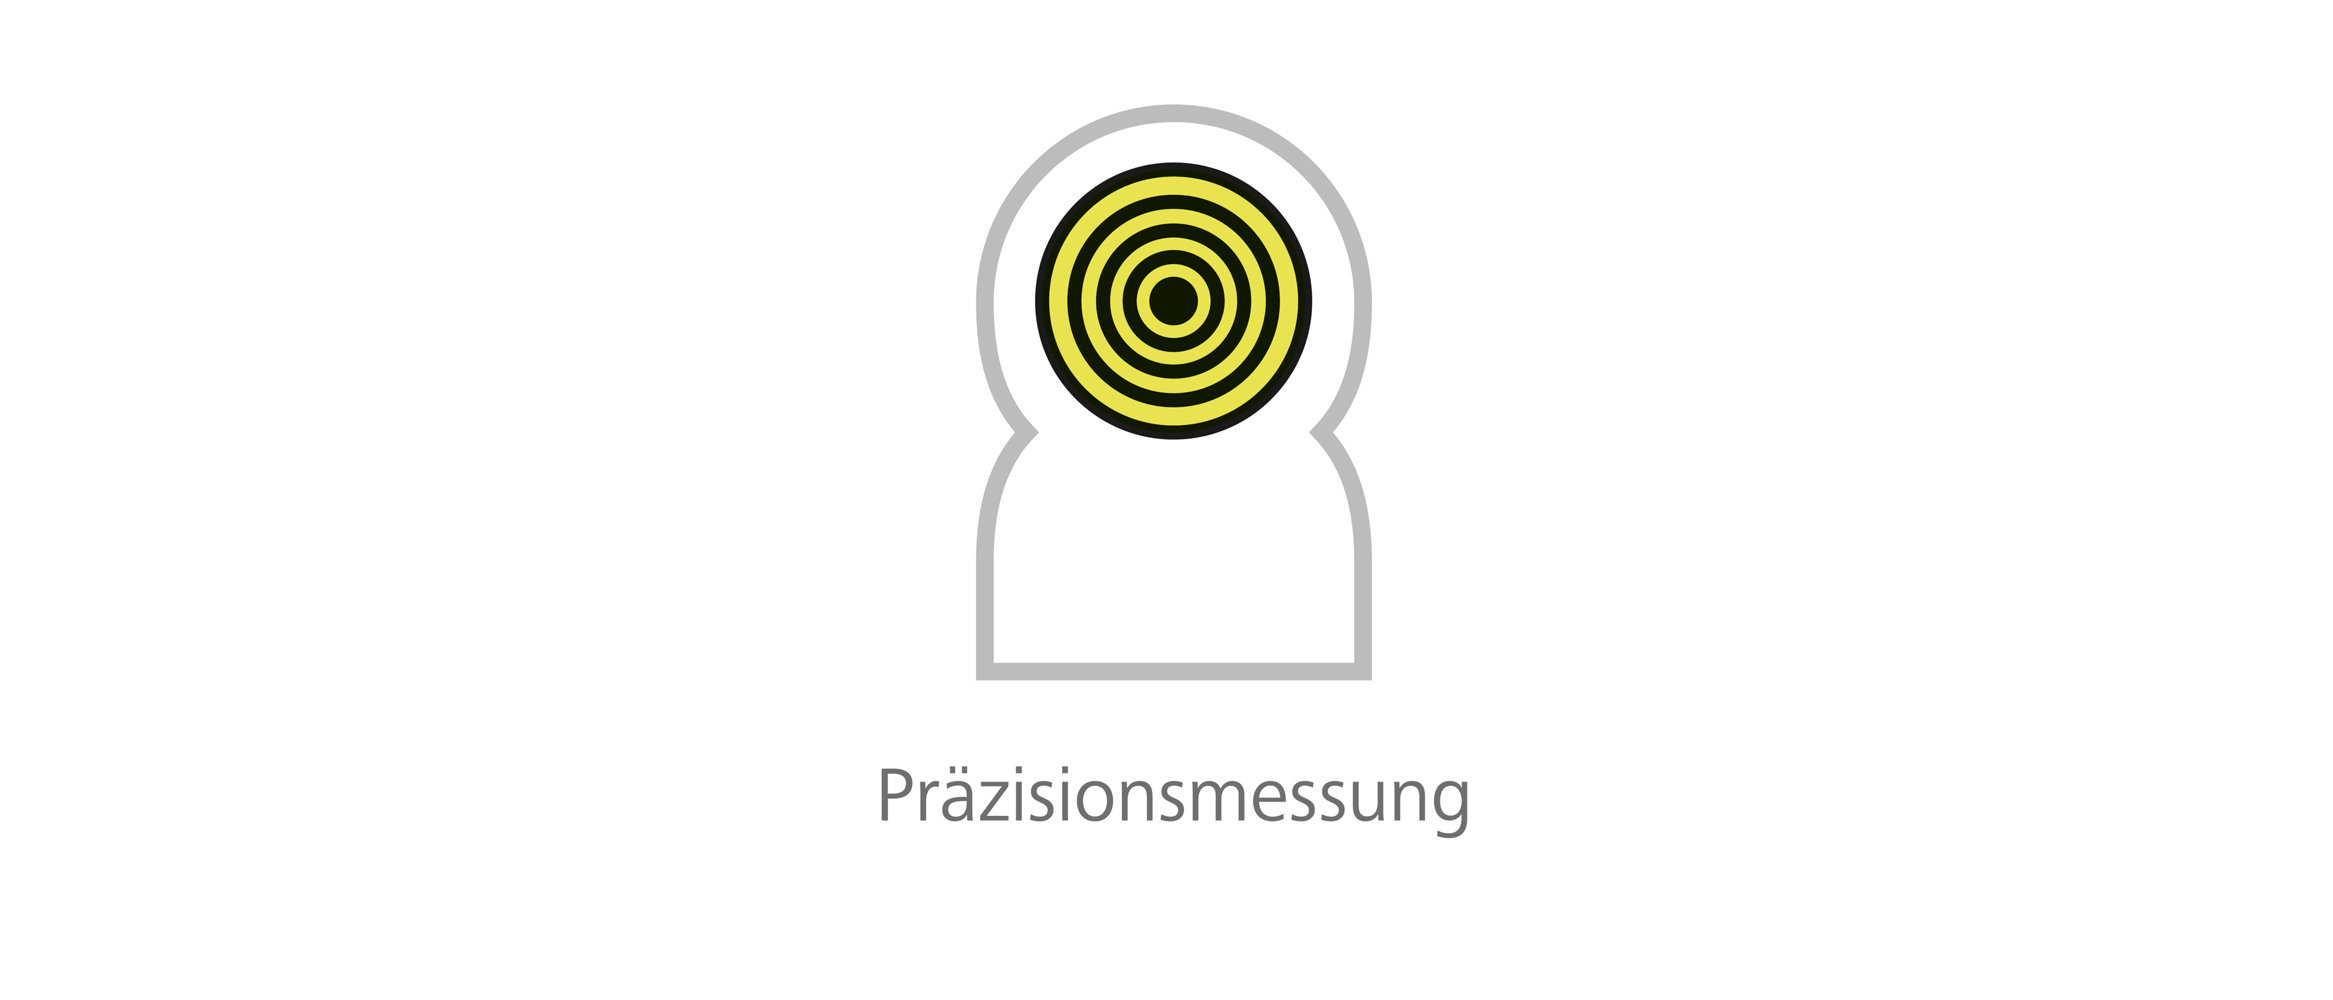 Präzisionsmessung